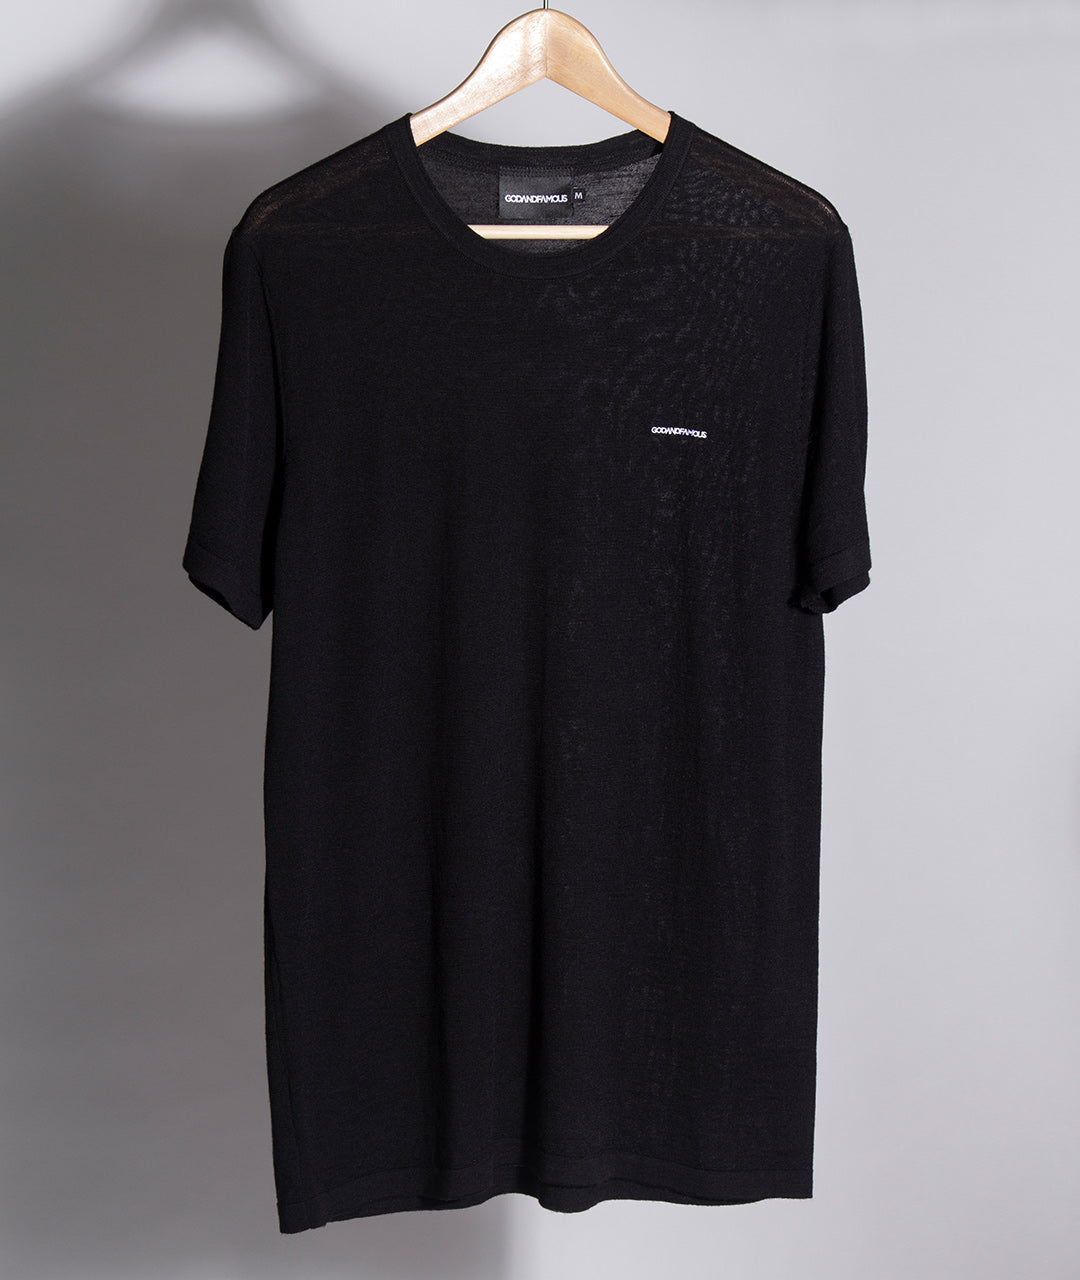 God and Famous Merino Wool Knit Shirt